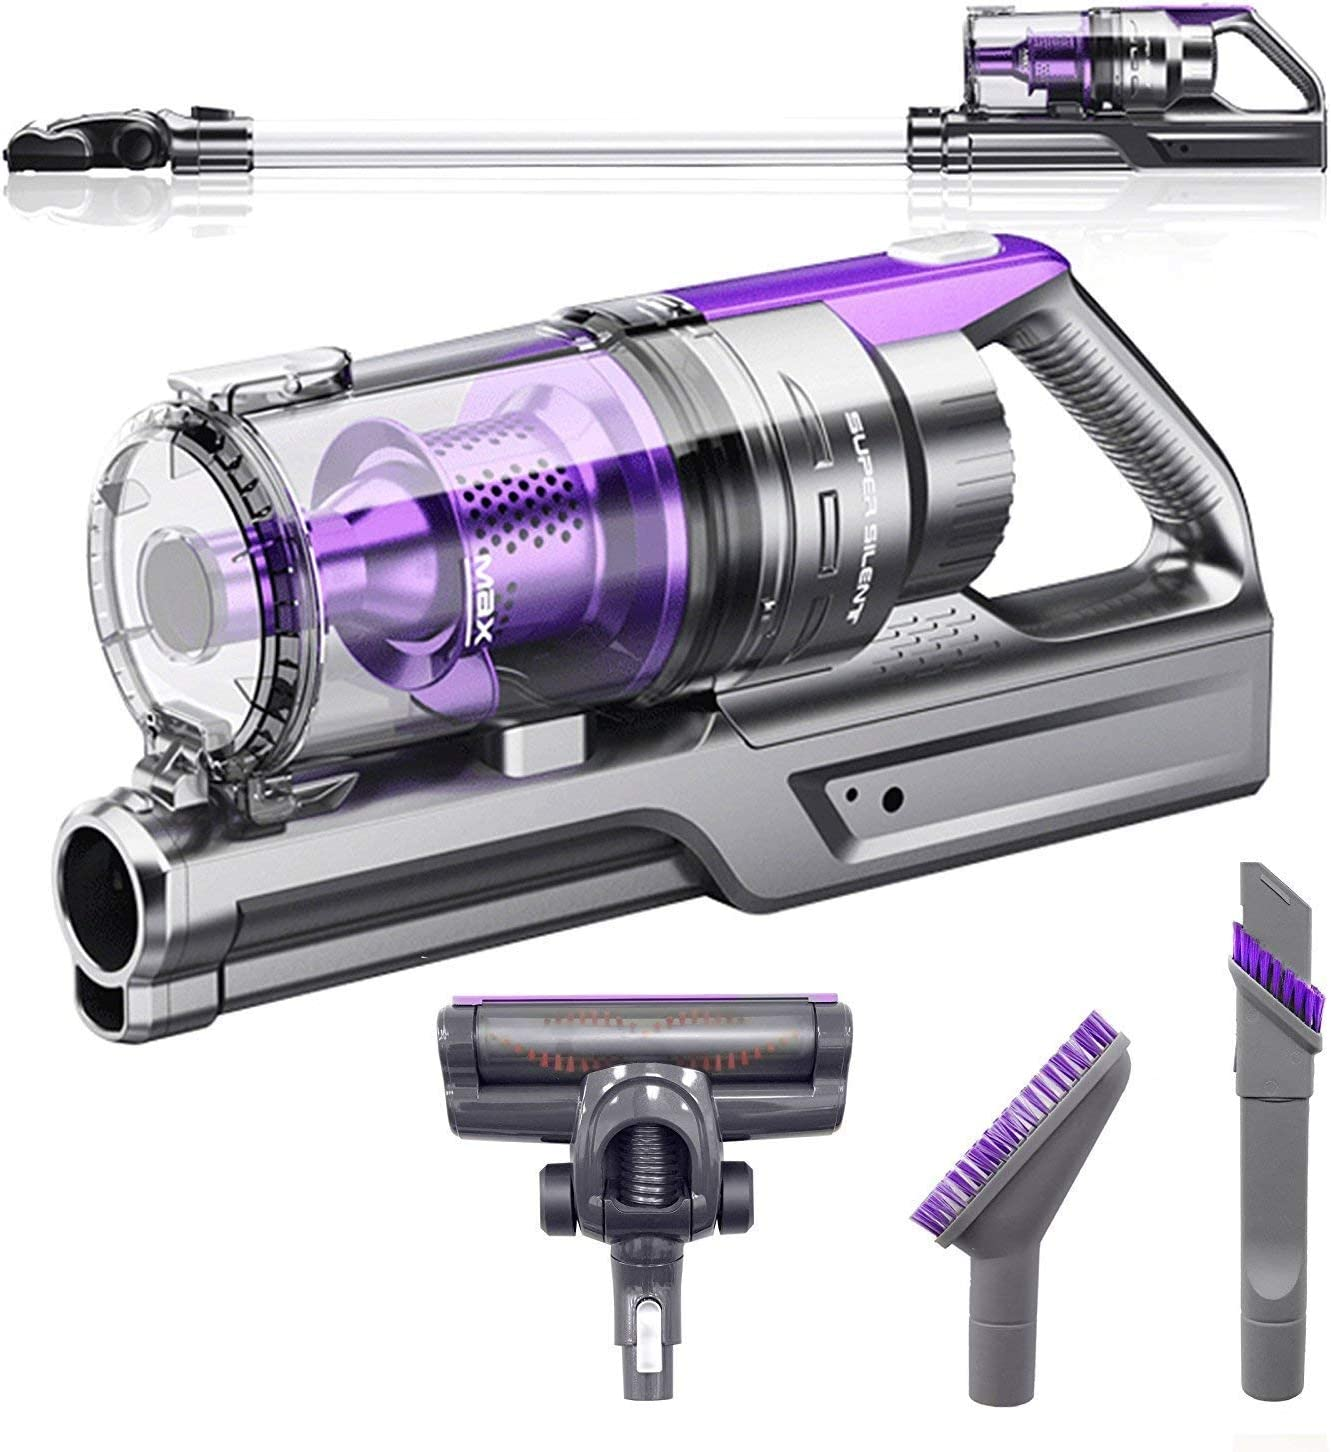 VViViD Rev Turbo Cordless Rechargeable Dual-Mode Vacuum Cleaner for w/Multiple Brush Attachments